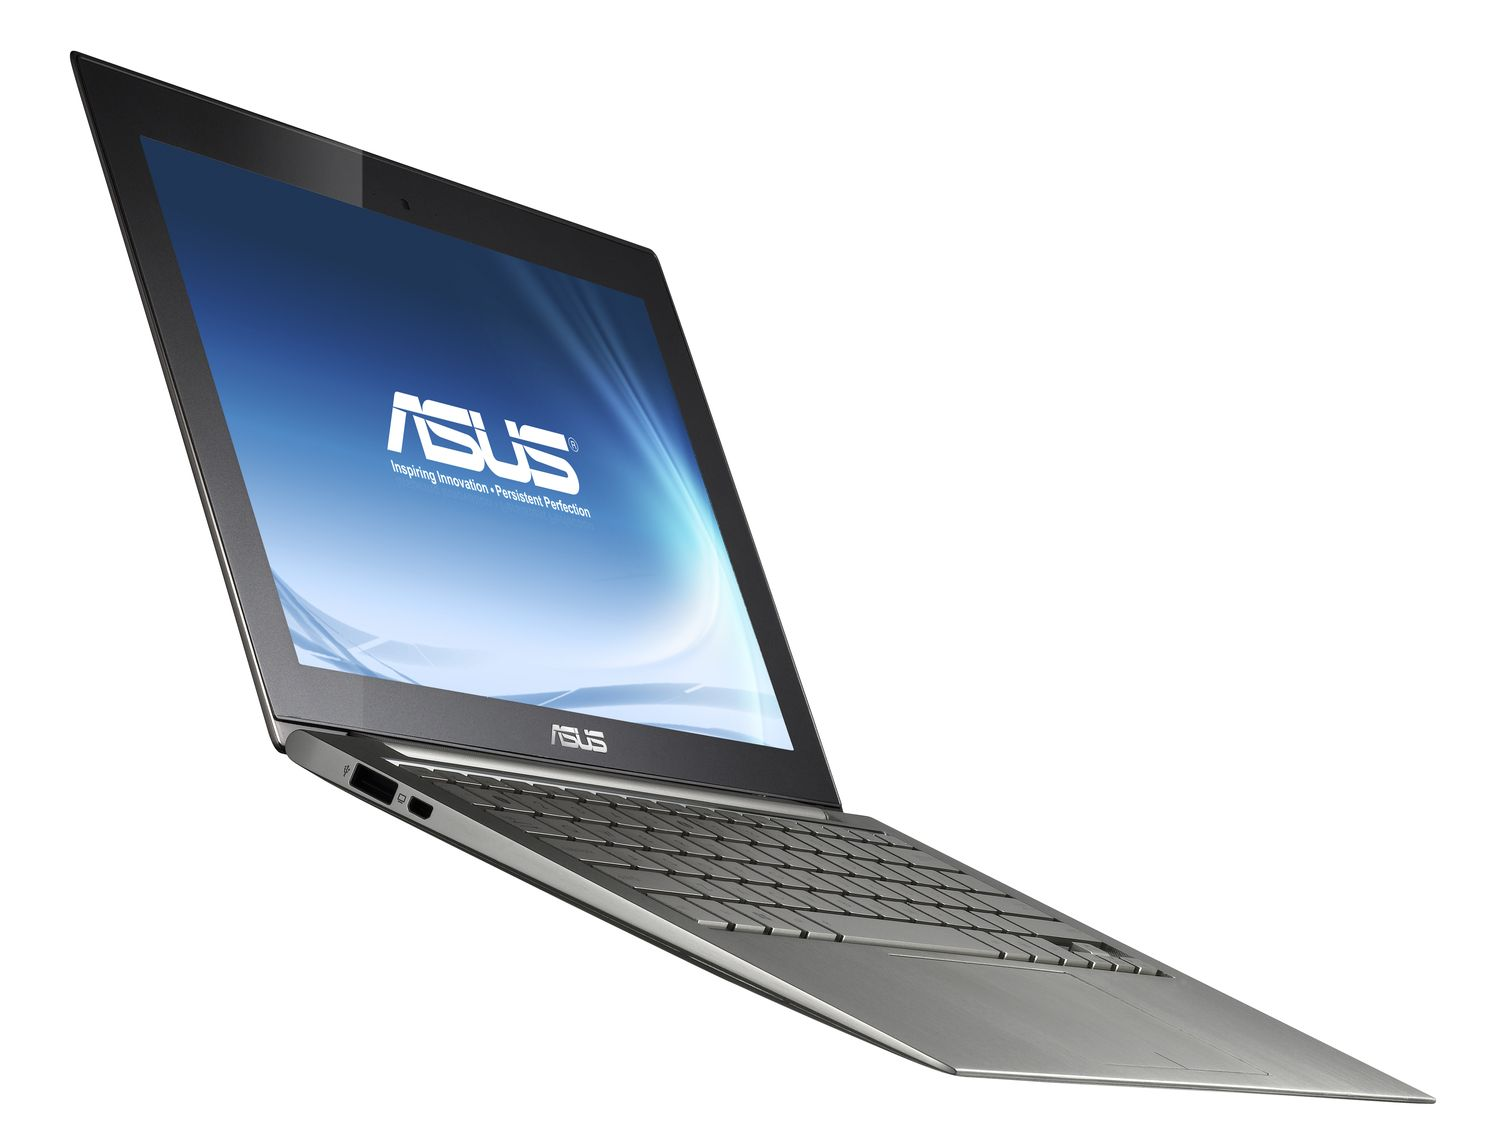 ASUS ZENBOOK PRIME UX31A INTEL WIFI DRIVERS FOR WINDOWS 8